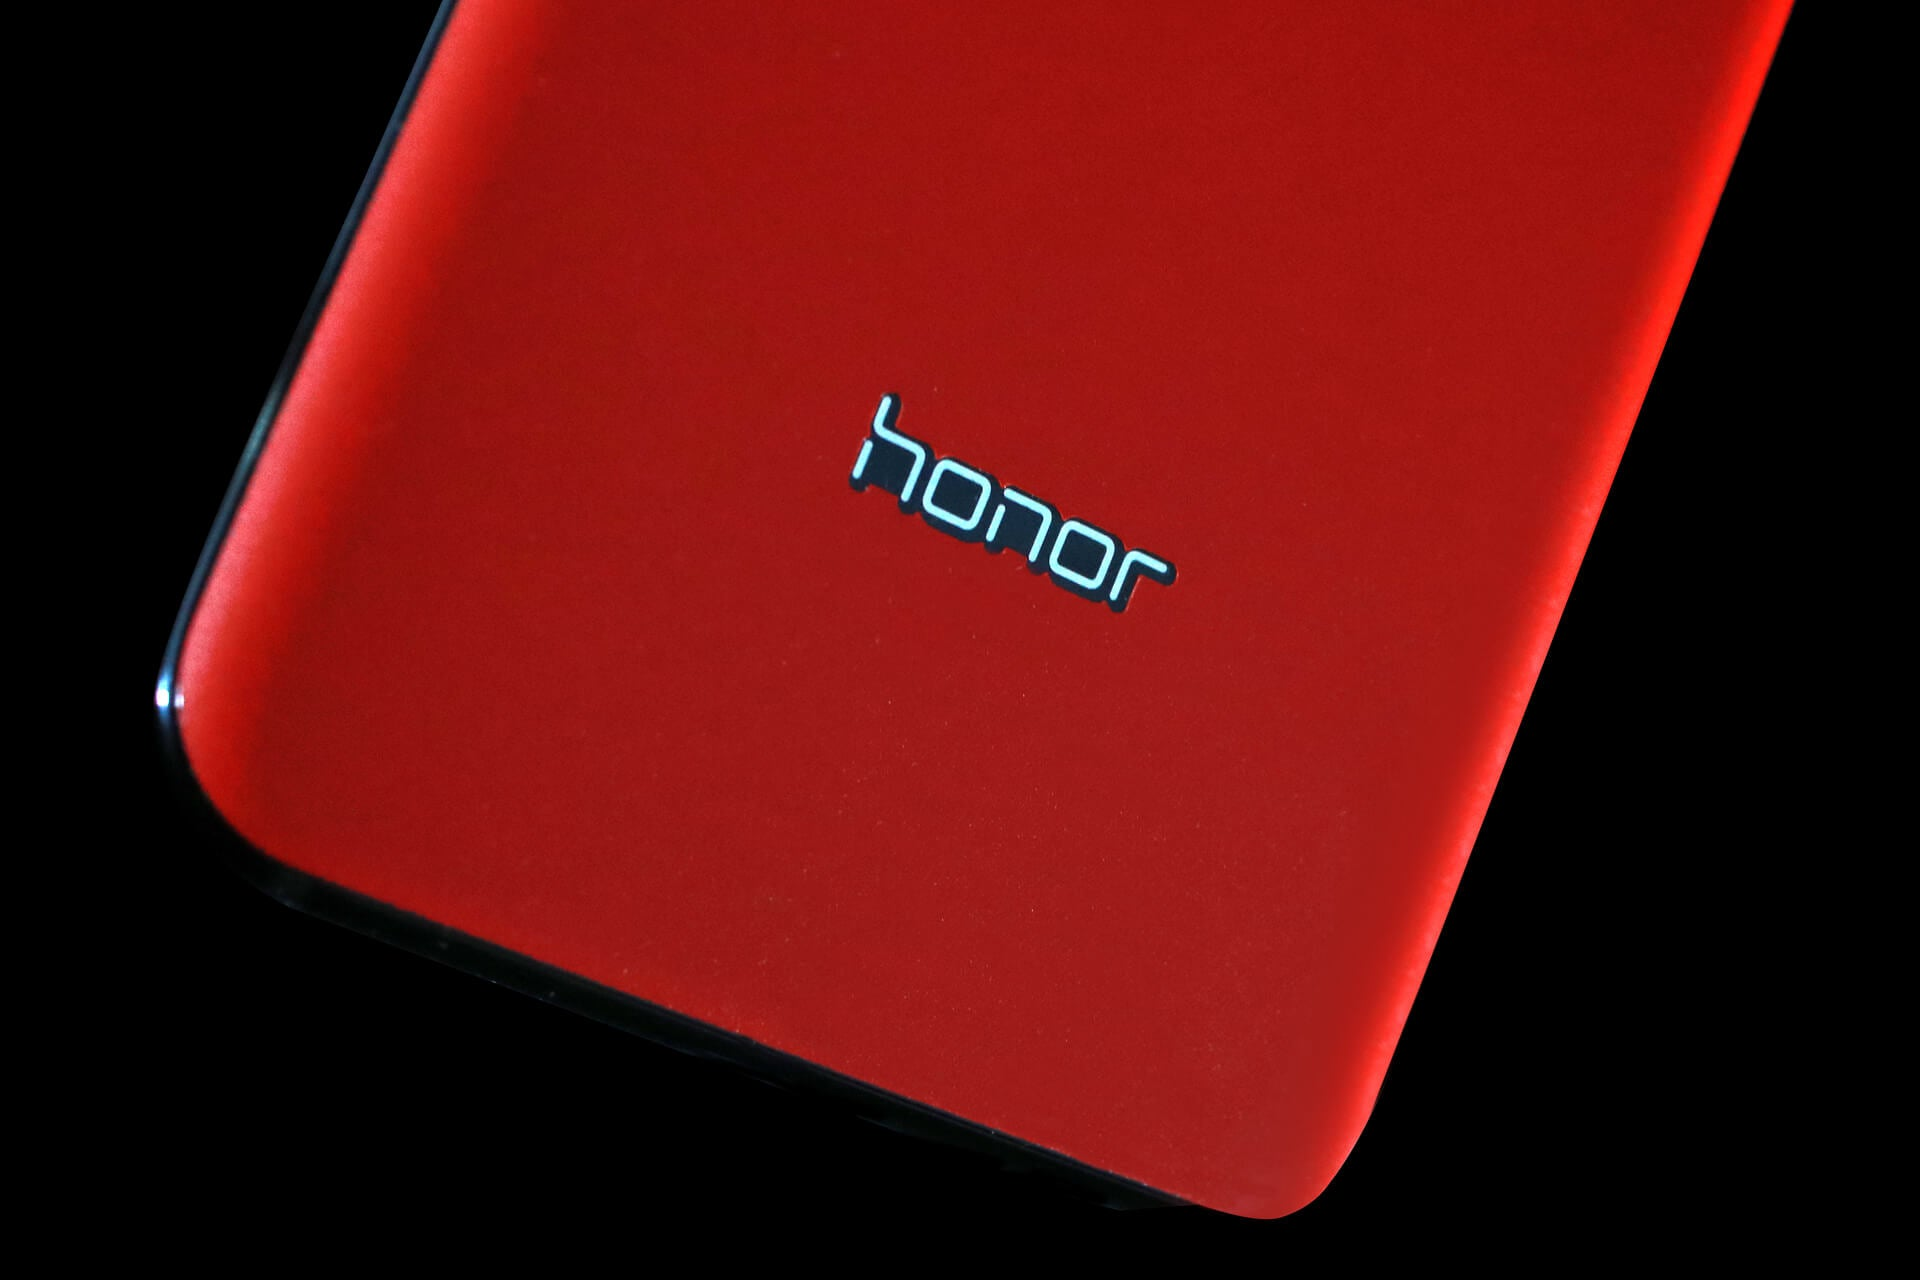 Honor 10 Matt Red Skins